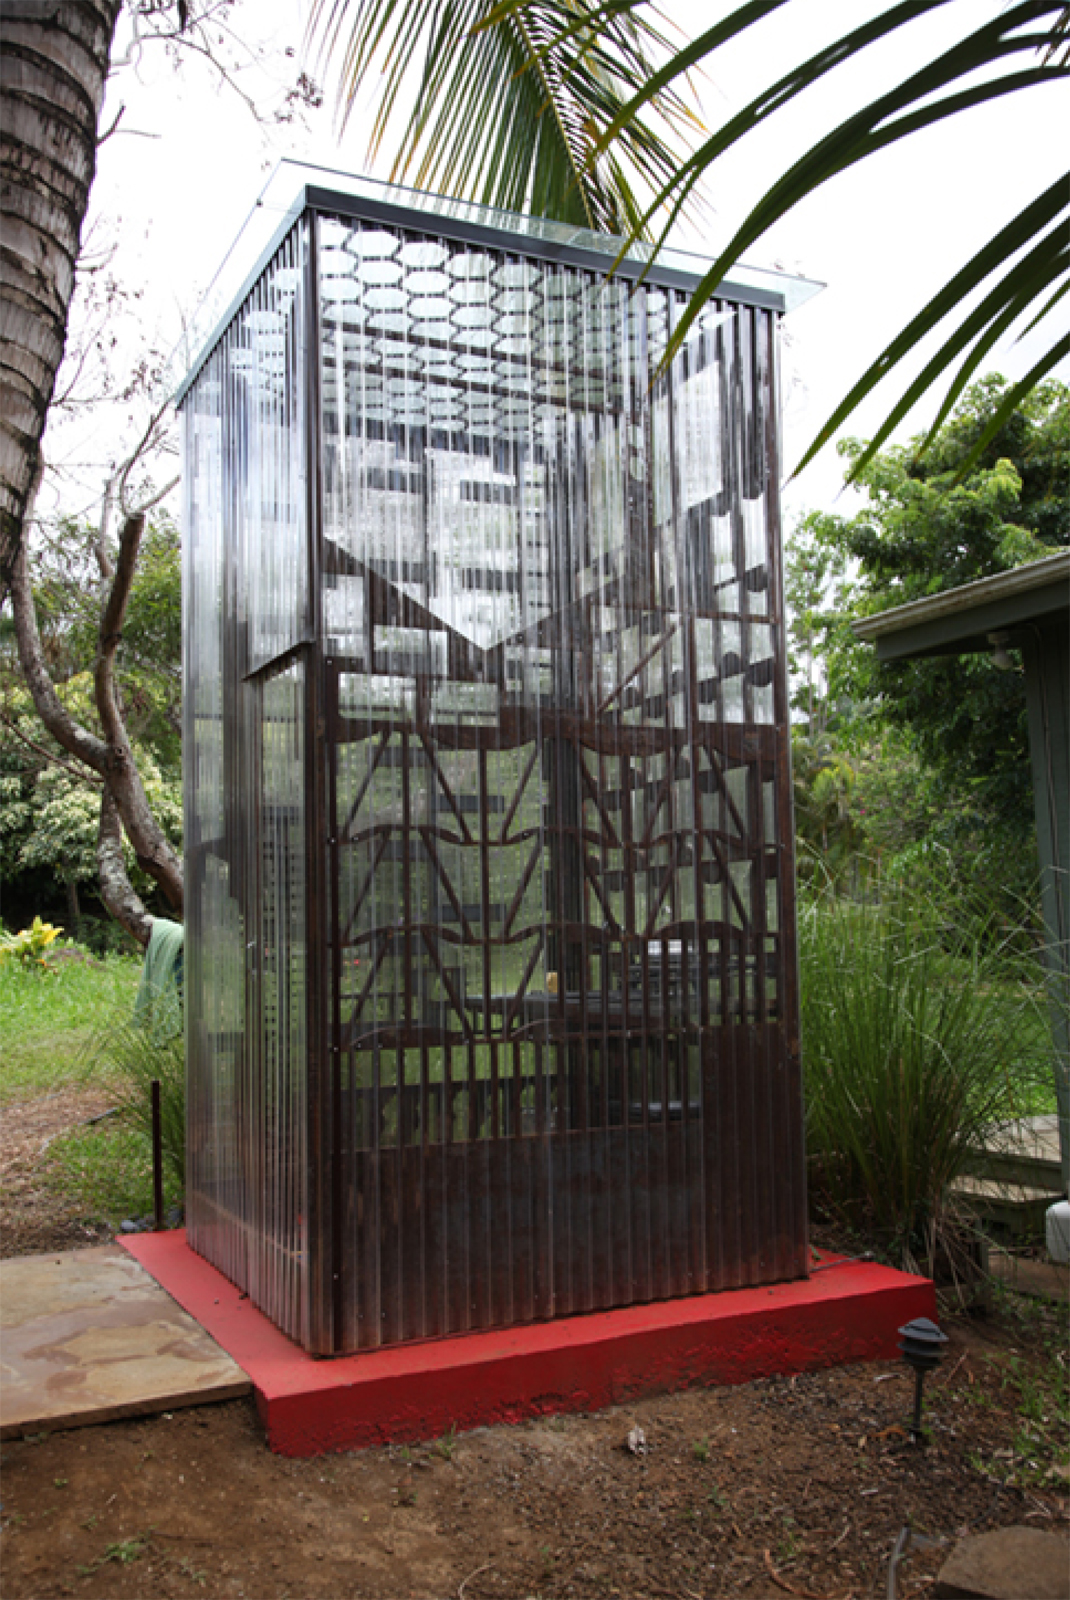 The Zen Complex features the Zen Guest House (a 96-square-foot sleeping quarter), the Zen Bathroom (a 48-square-foot, freestanding bathroom equipped with a toilet, sink, and shower), and the latest addition: the six-foot-wide, six-foot-deep, 12-foot-tall